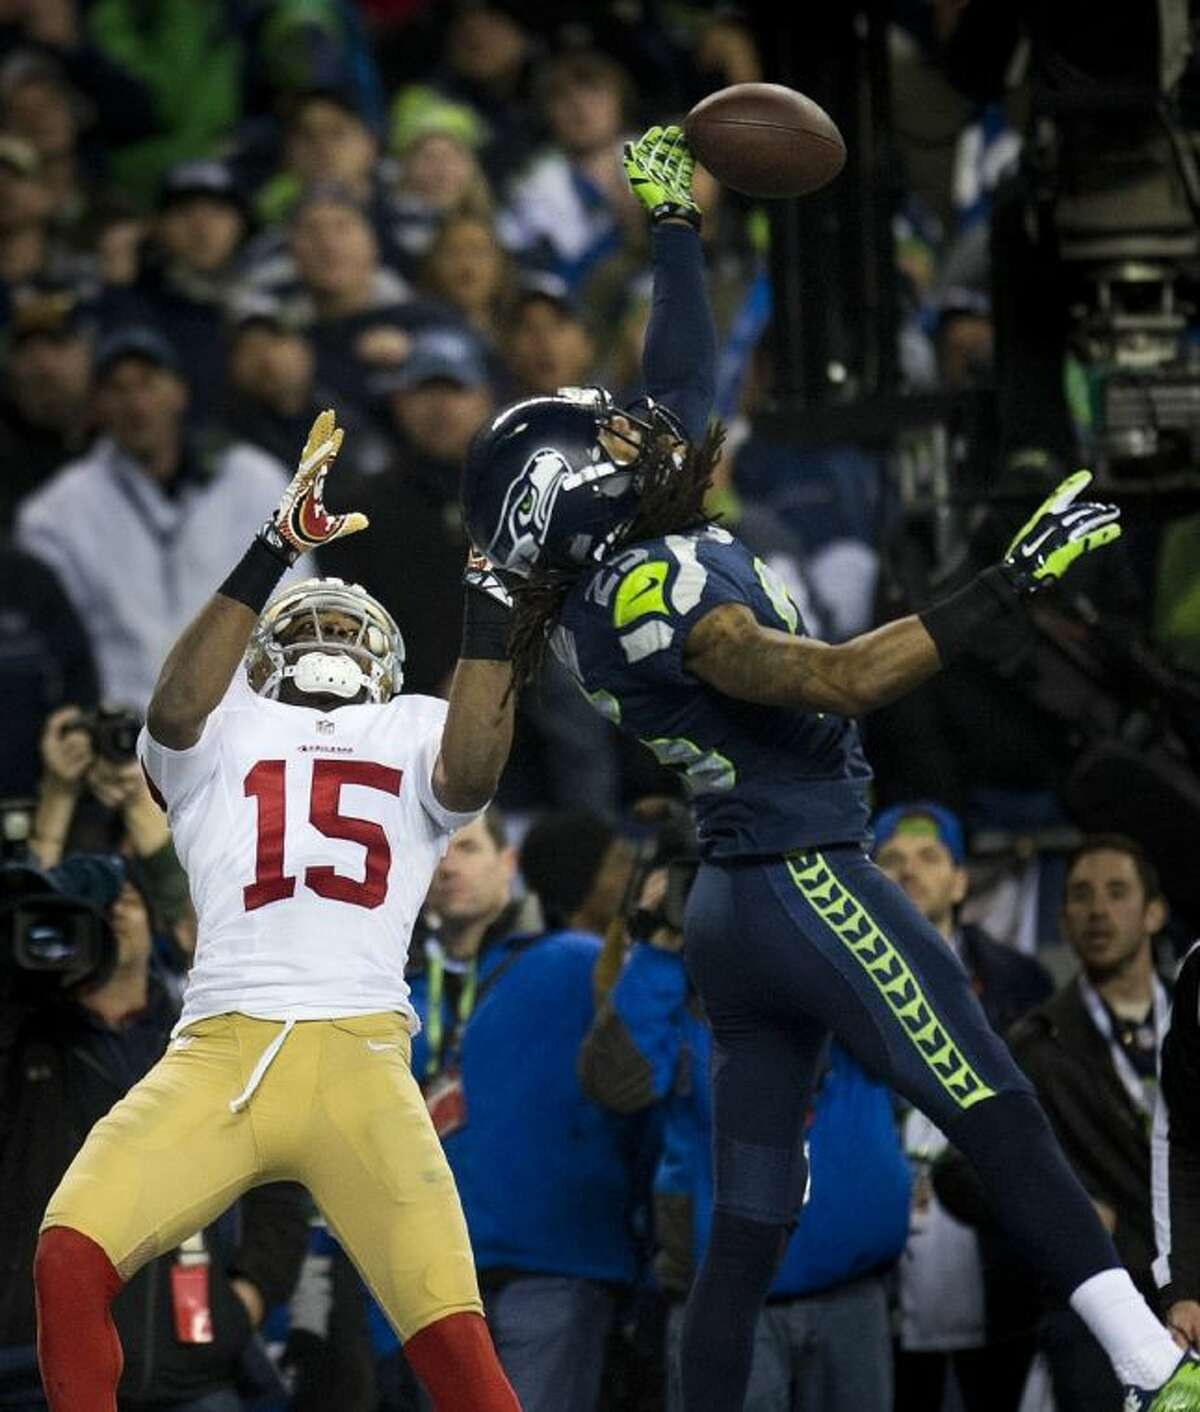 Seahawks cornerback Richard Sherman, right, bats the ball to teammate Malcolm Smith for the interception that sealed his team's Super Bowl berth on Sunday night.